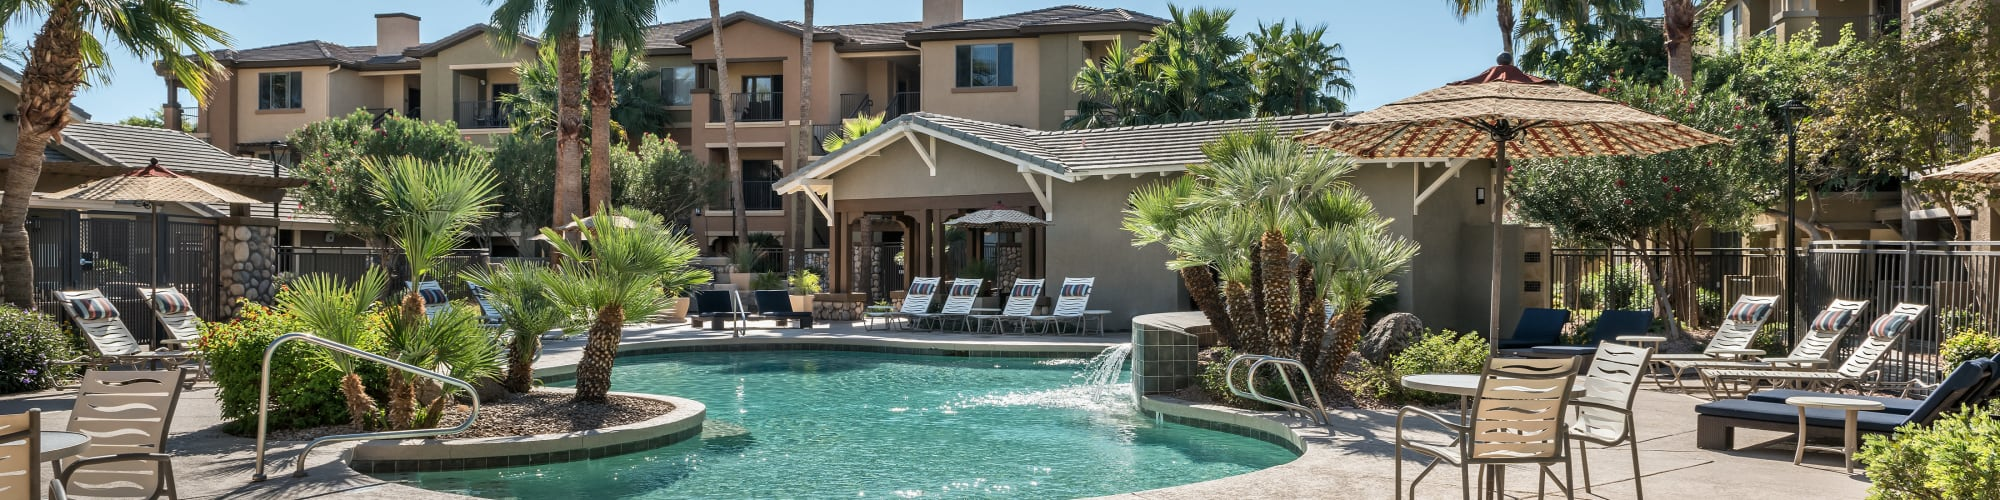 Amenities at Azul at Spectrum in Gilbert, Arizona